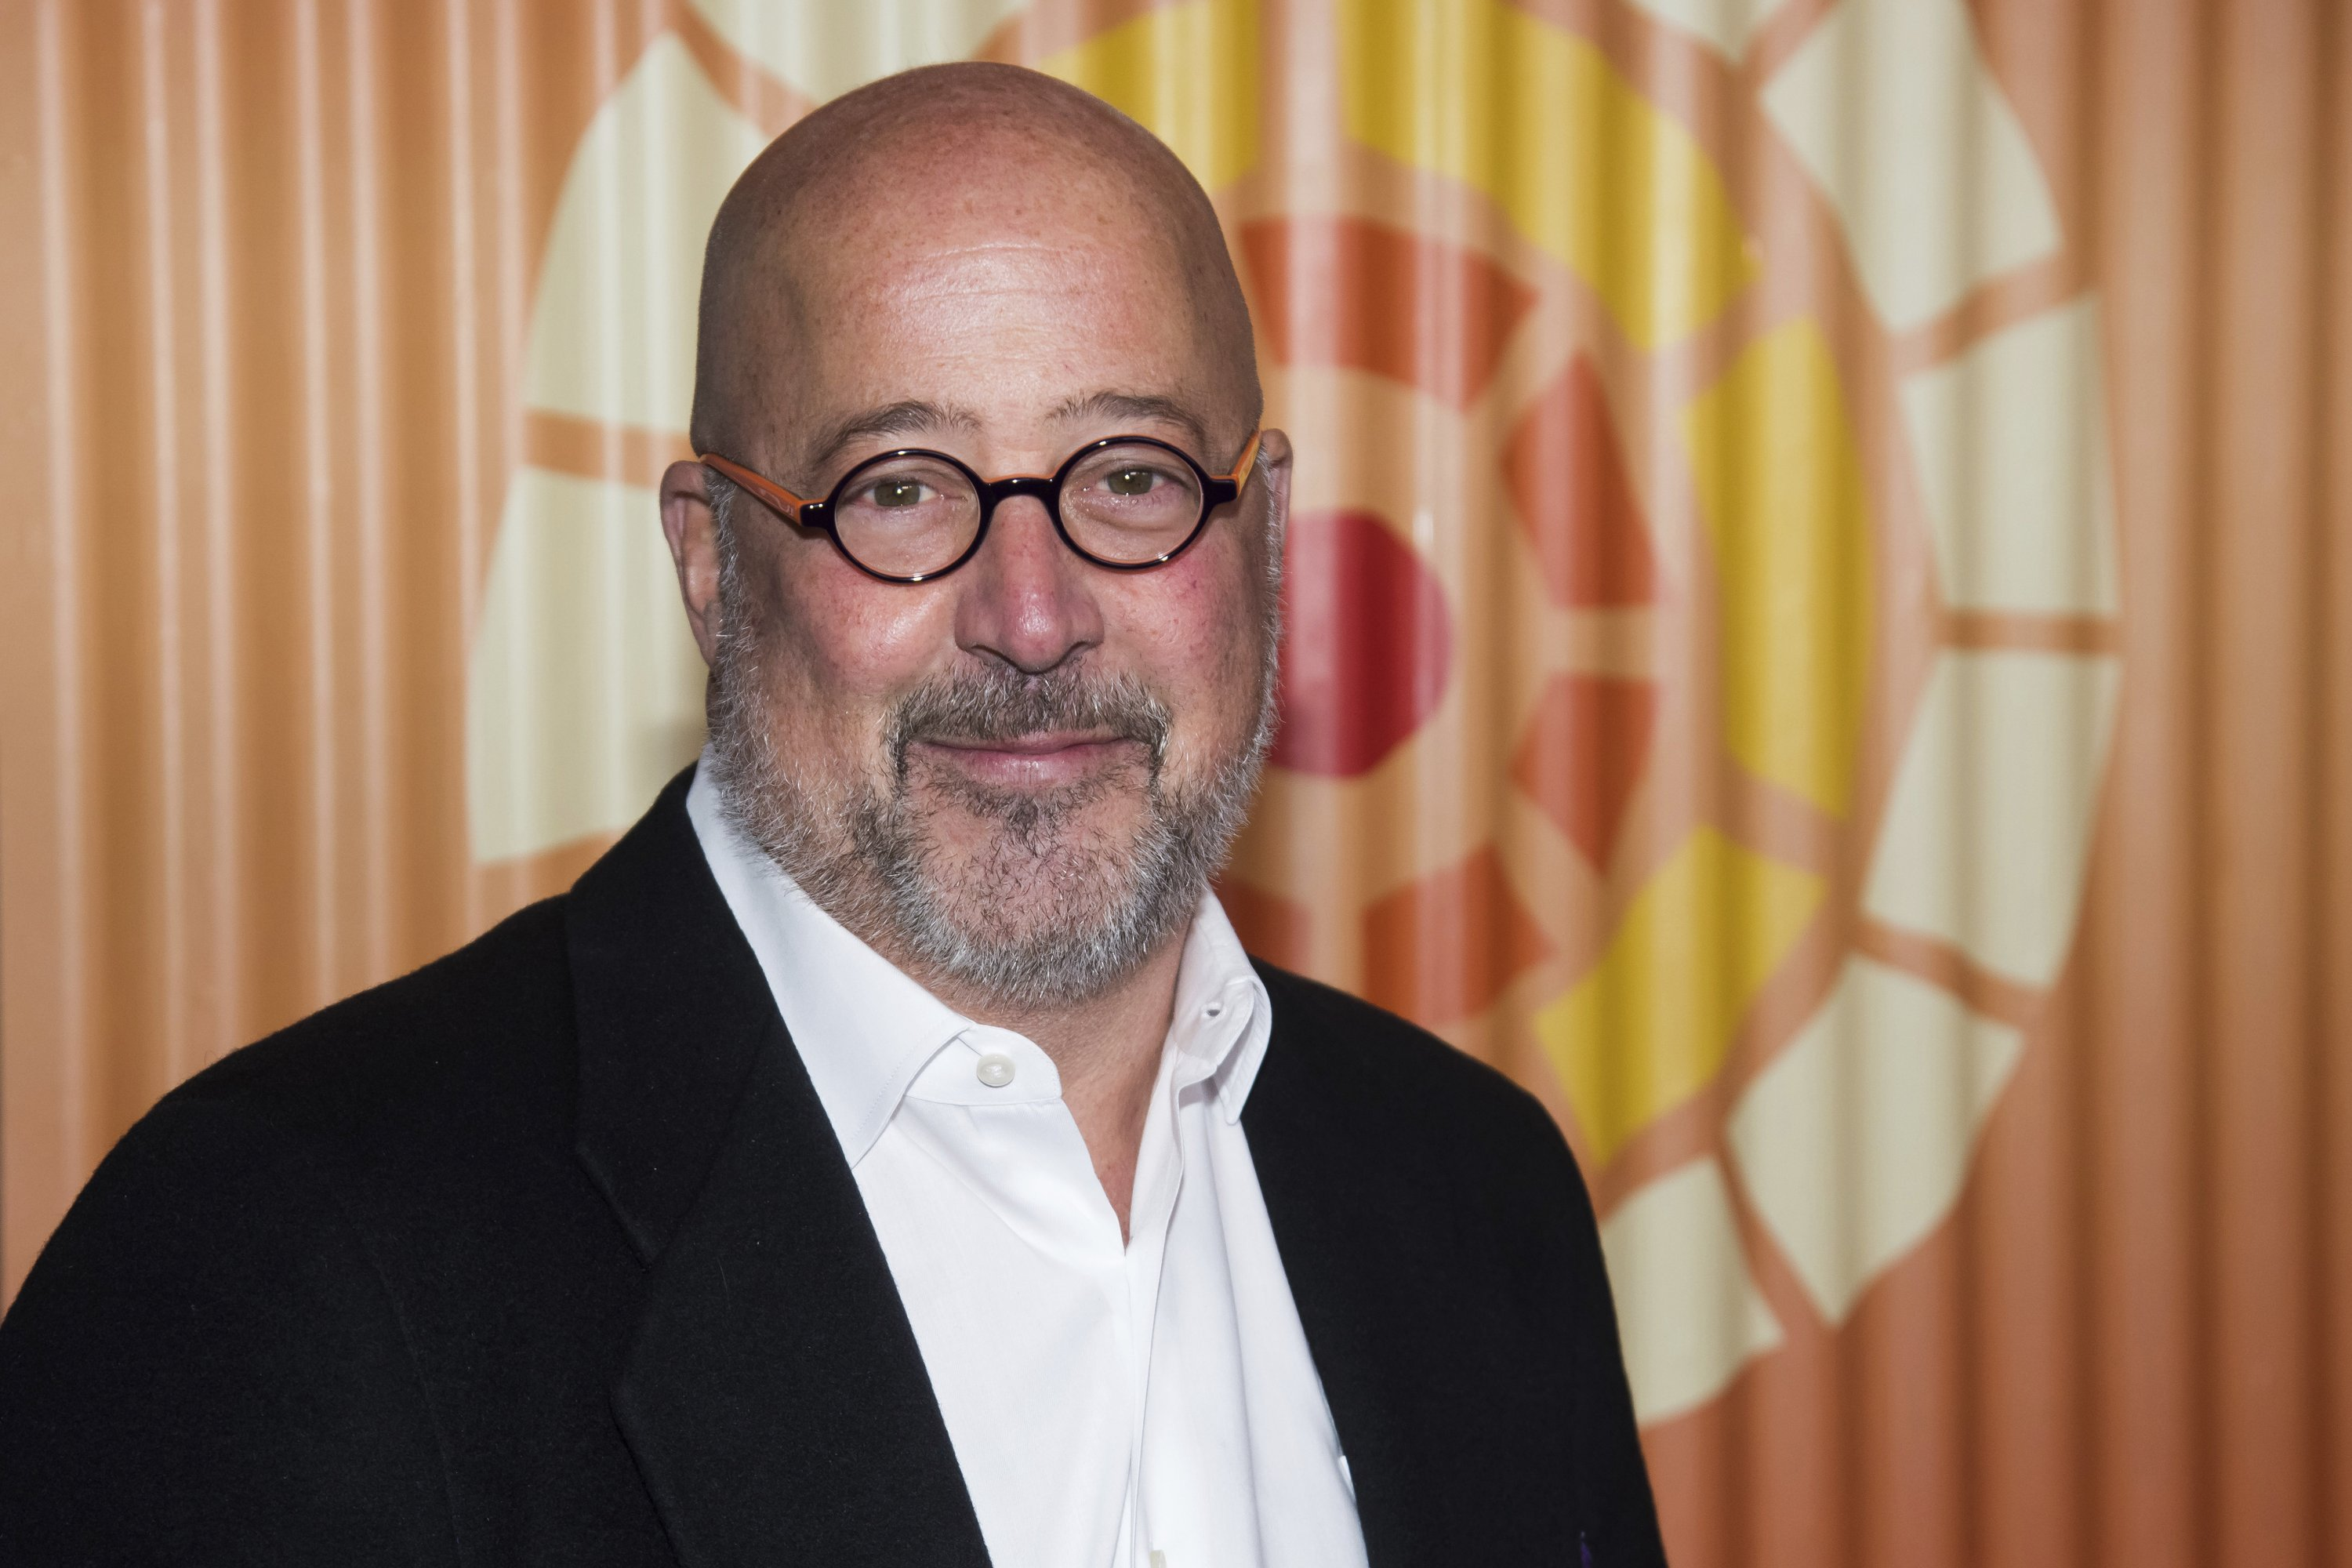 Chef Andrew Zimmern shares tips for a downsized Thanksgiving